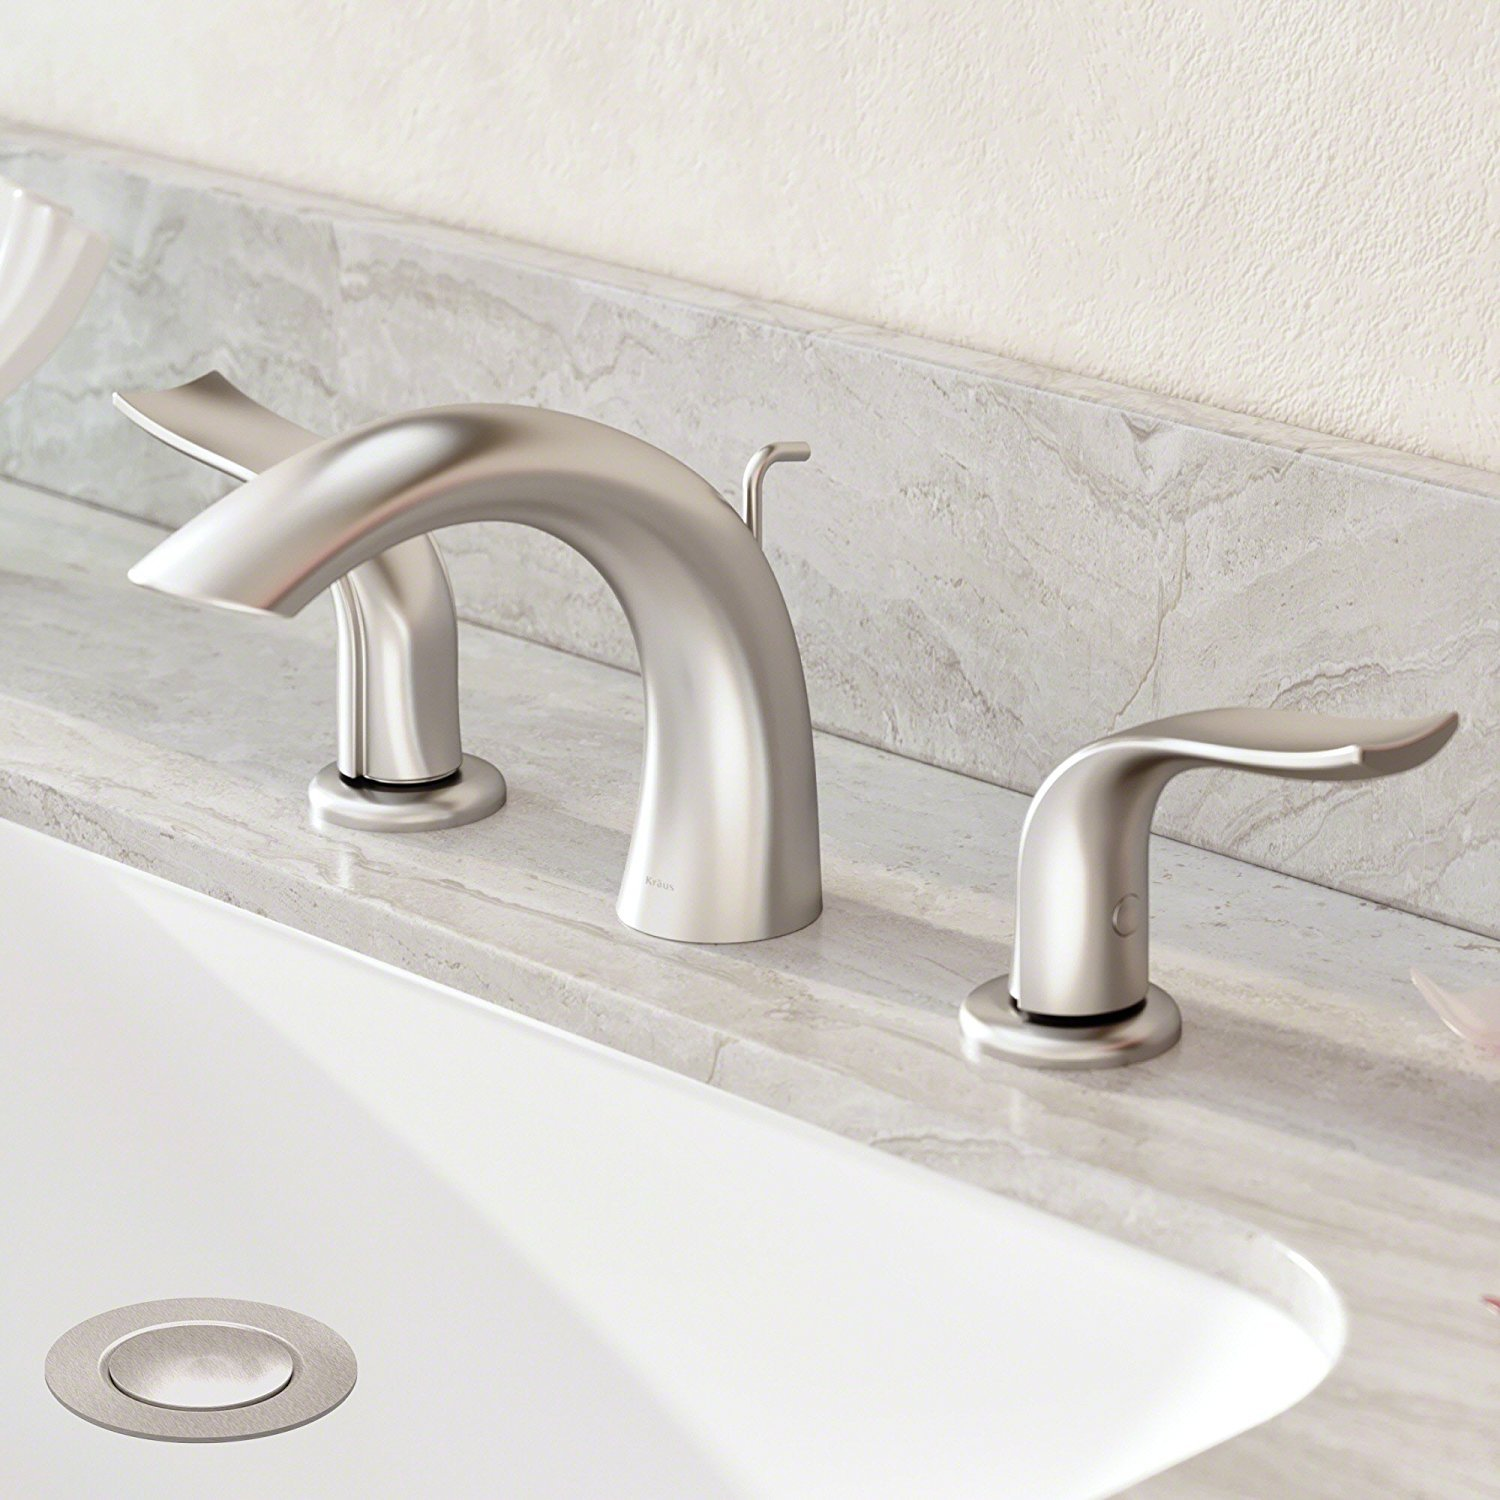 Kohra Spot-Free Two Handle 8 Inch Widespread Bathroom Faucet with Lift Rod Drain, All-Brite Brushed Nickel FUS-14003BN